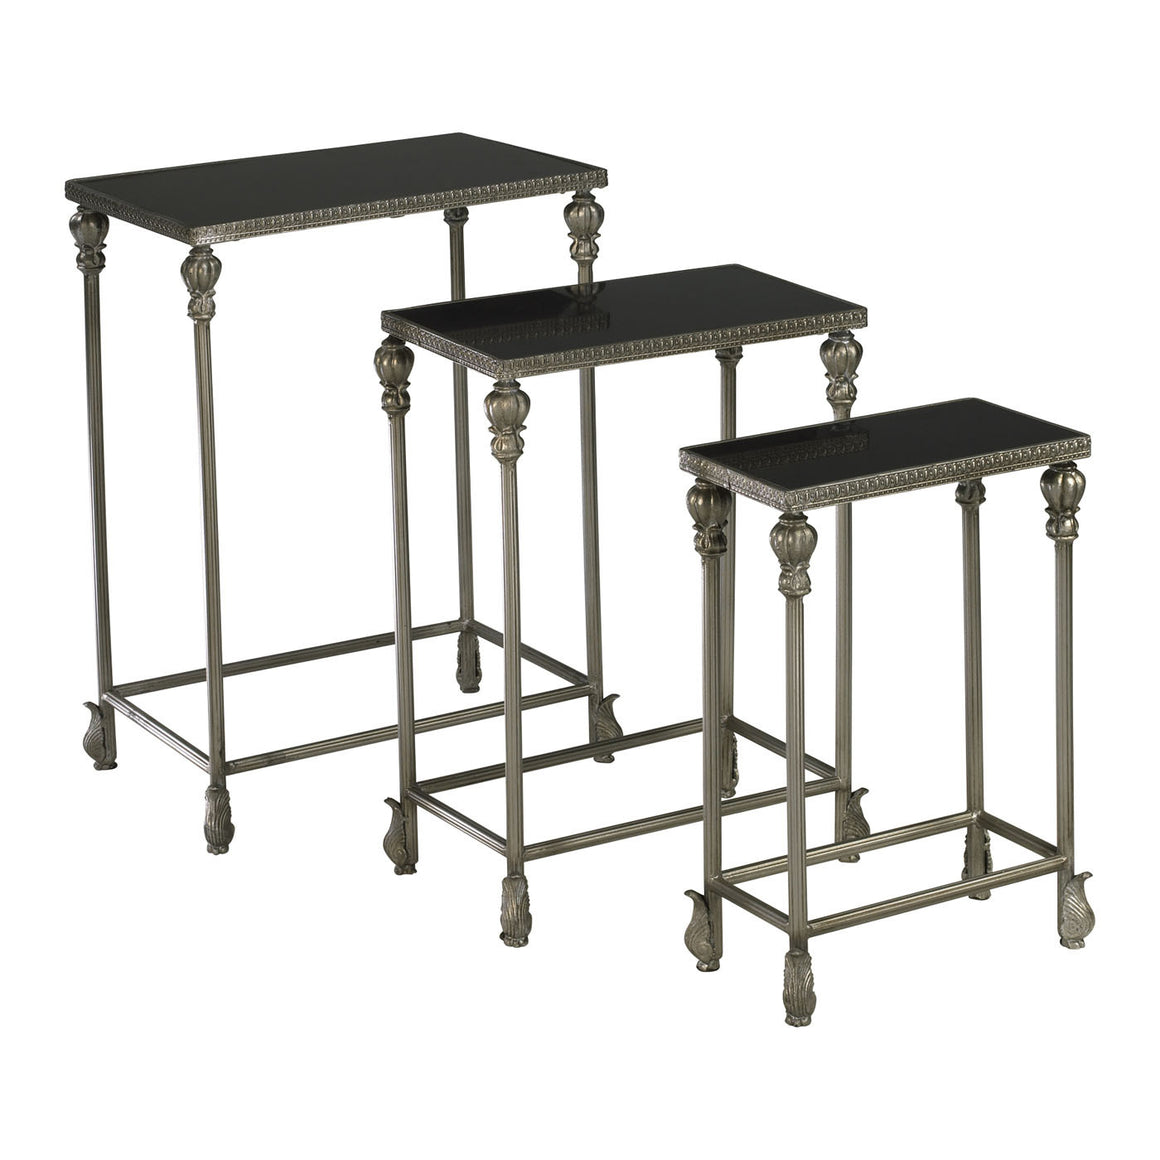 Livingston Nesting Tables 01597 by Cyan Design